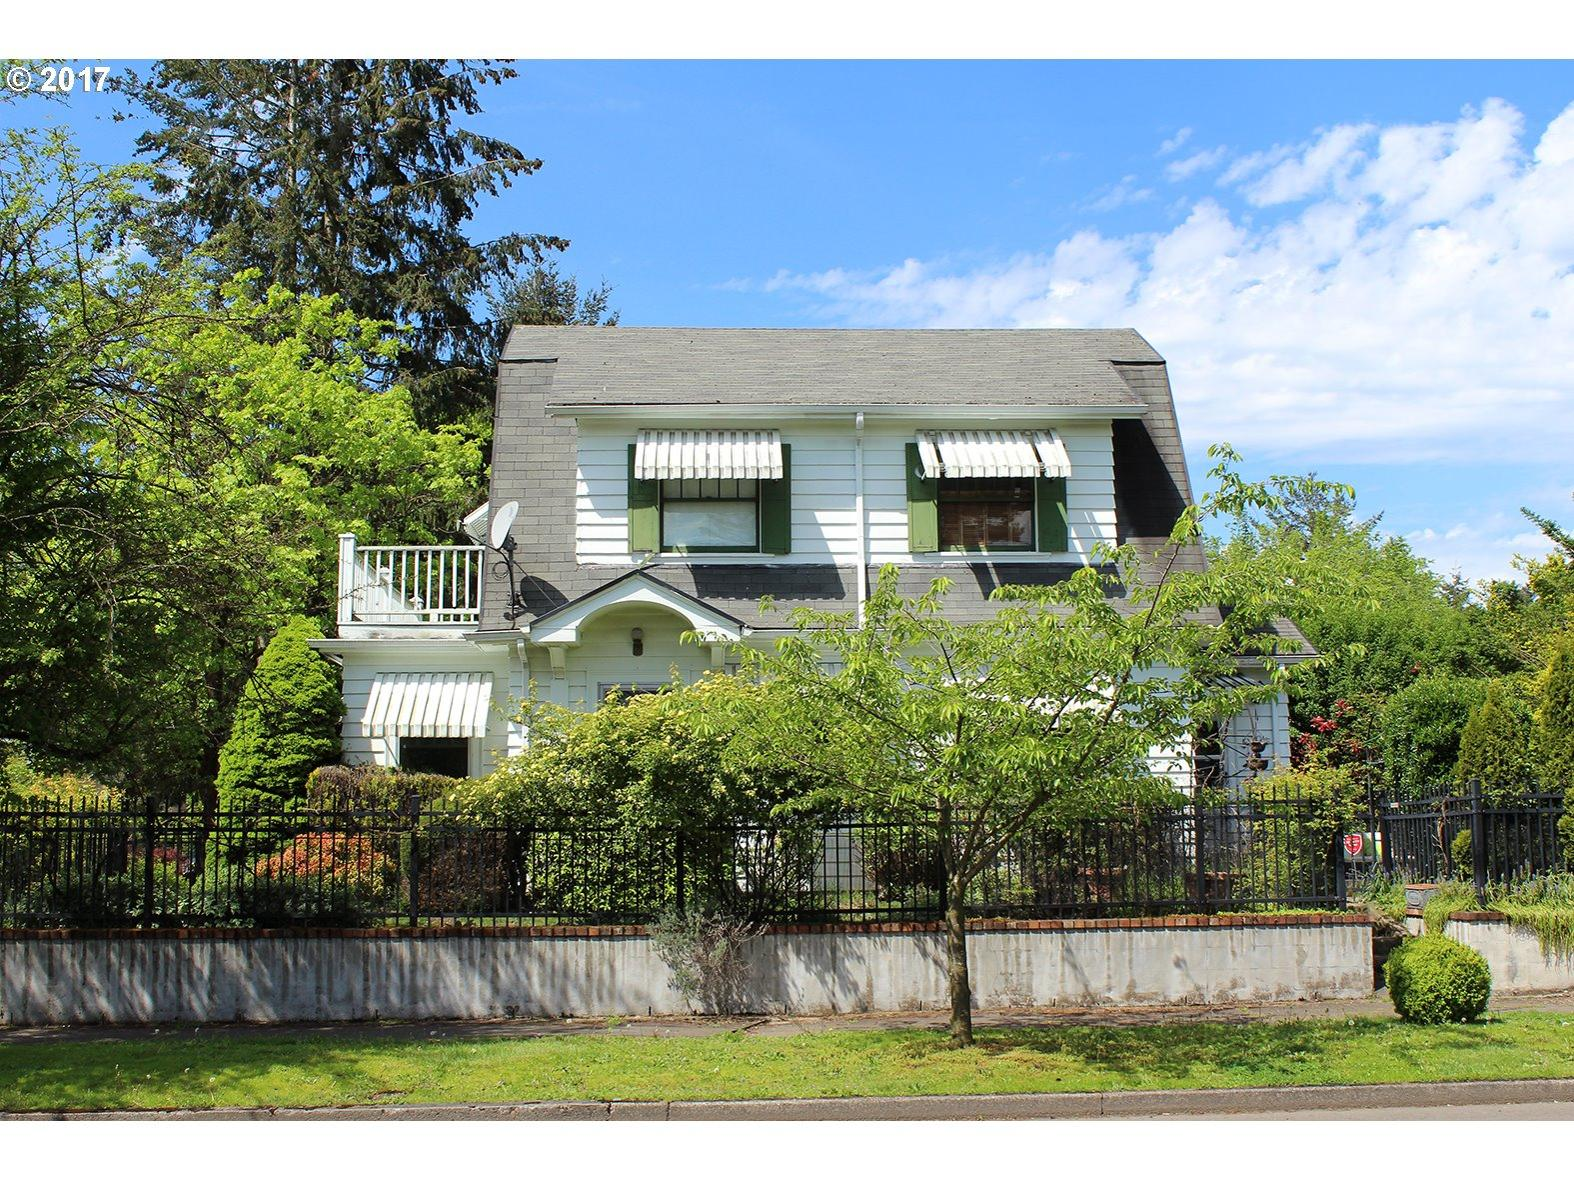 5643 Ne Broadway Portland Or Mls 17046849 Better Homes And Gardens Real Estate